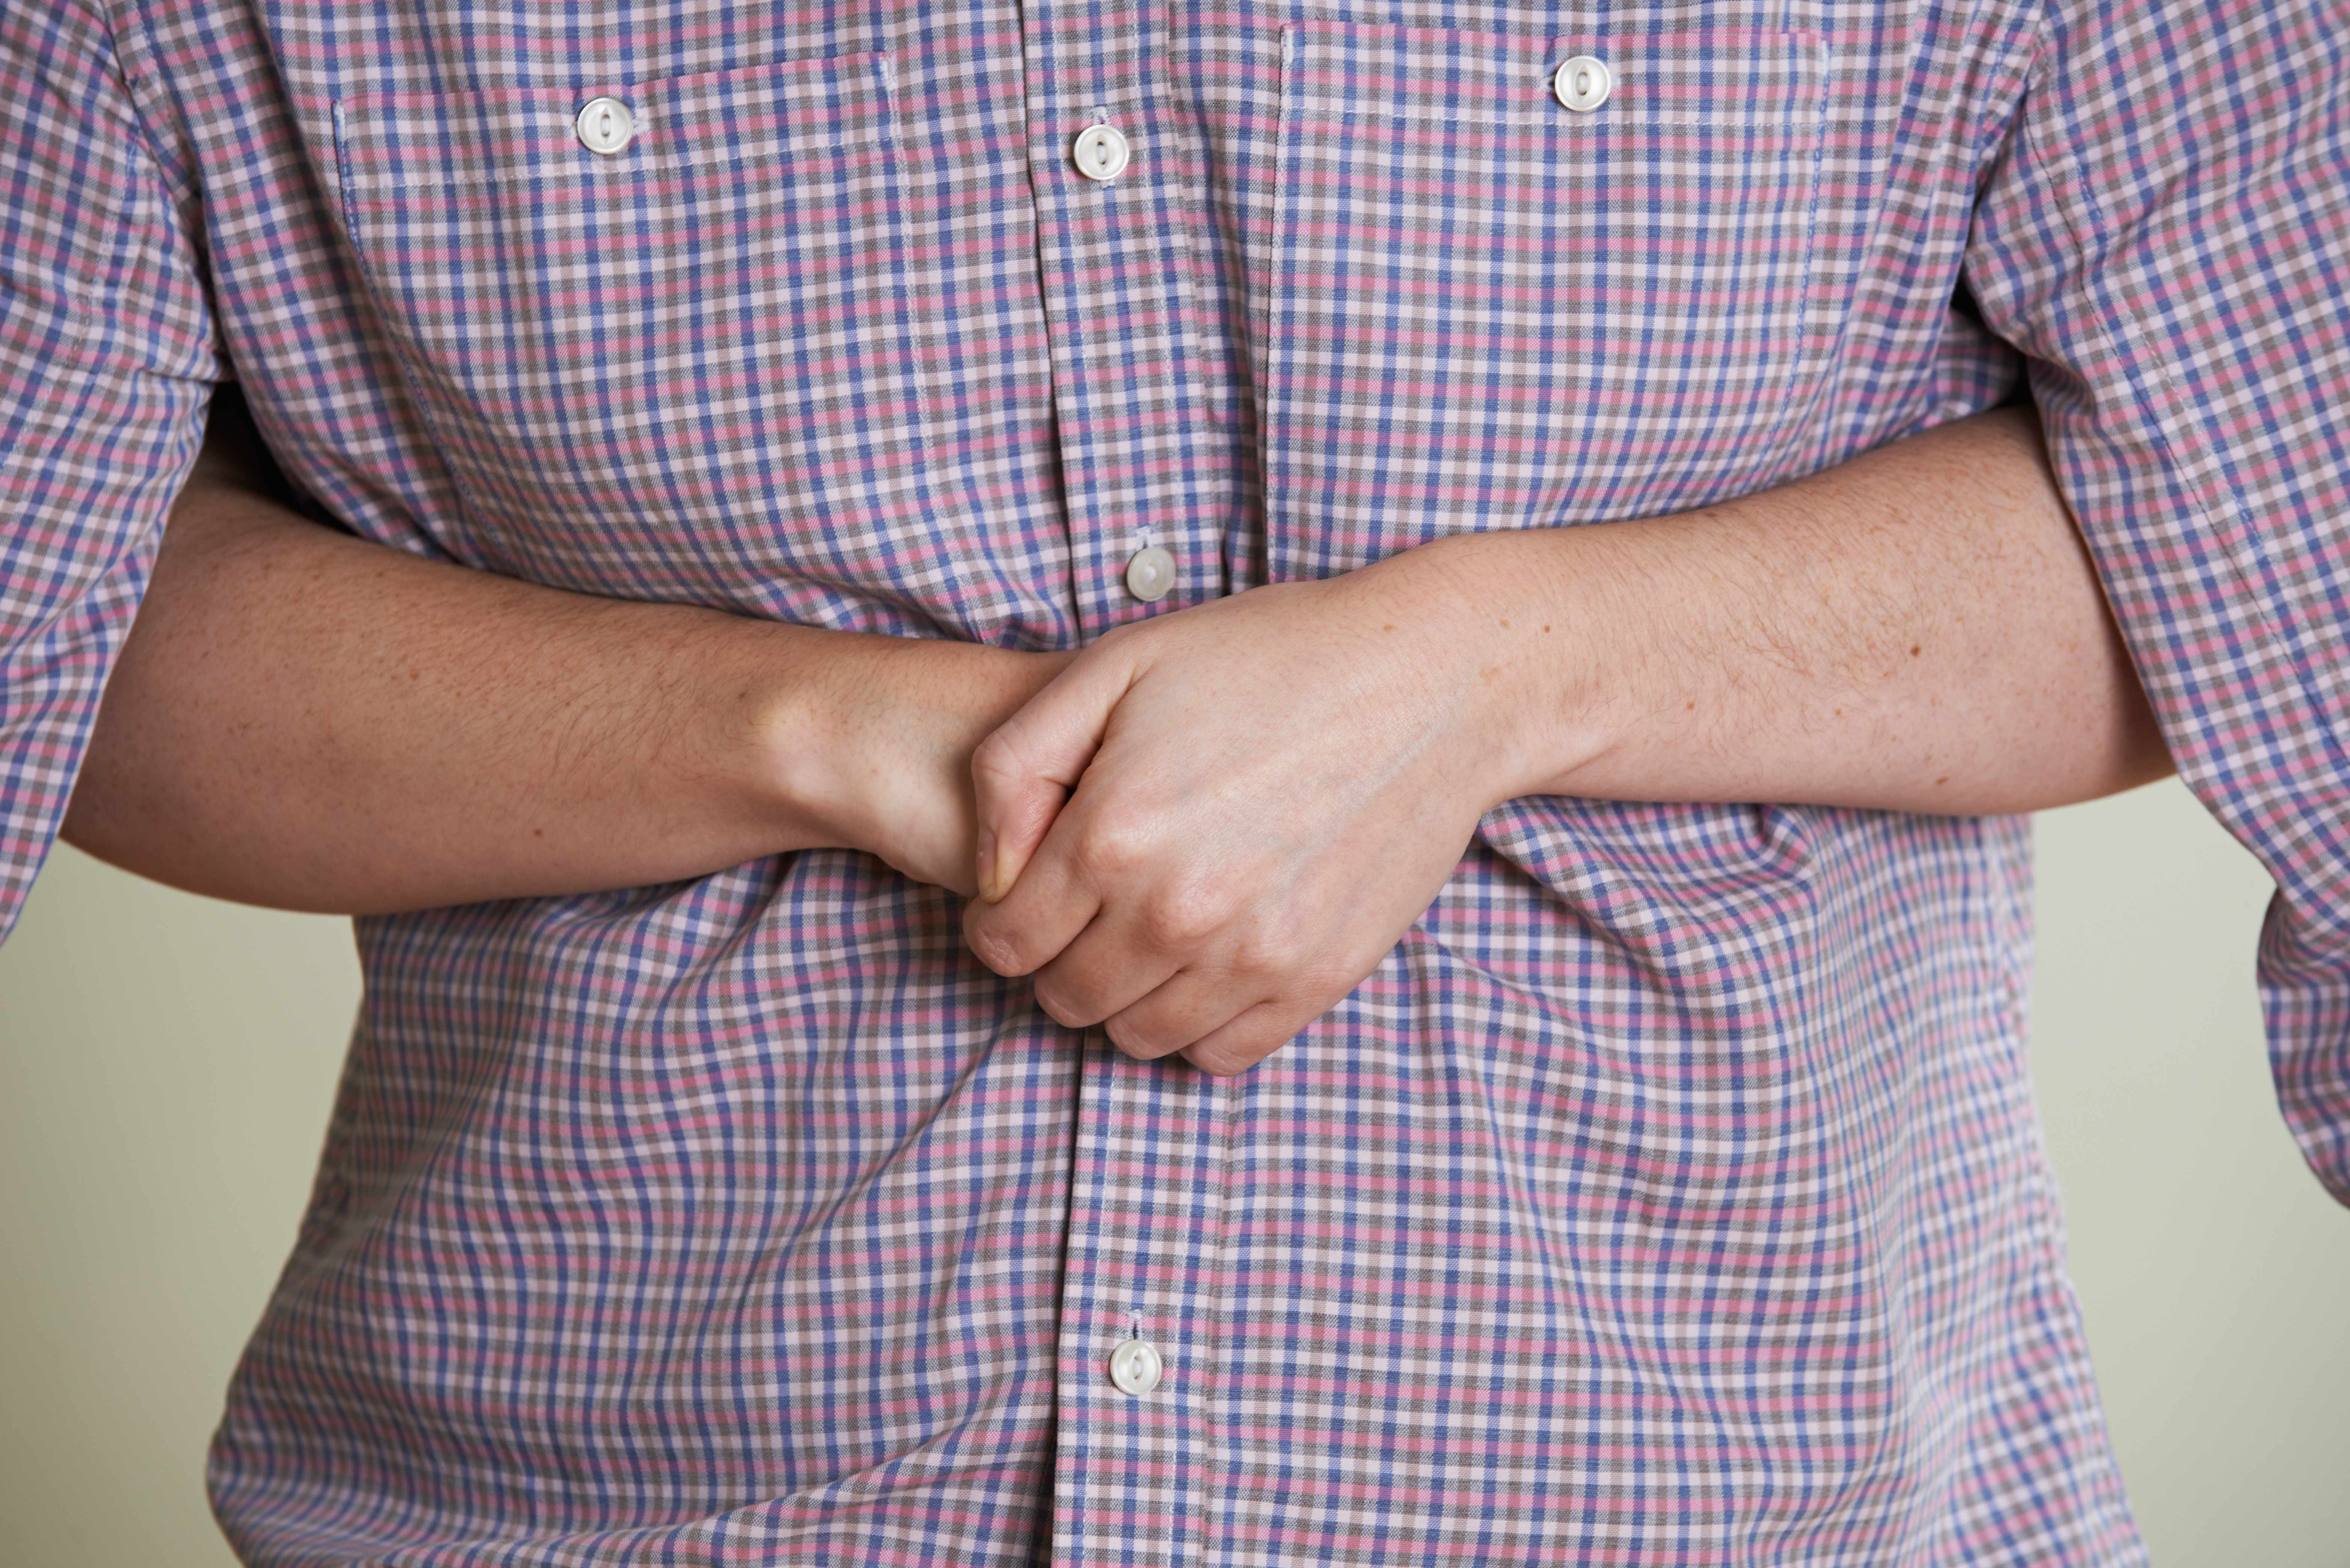 a person with arms wrapped from behind another person doing the Heimlich Maneuver